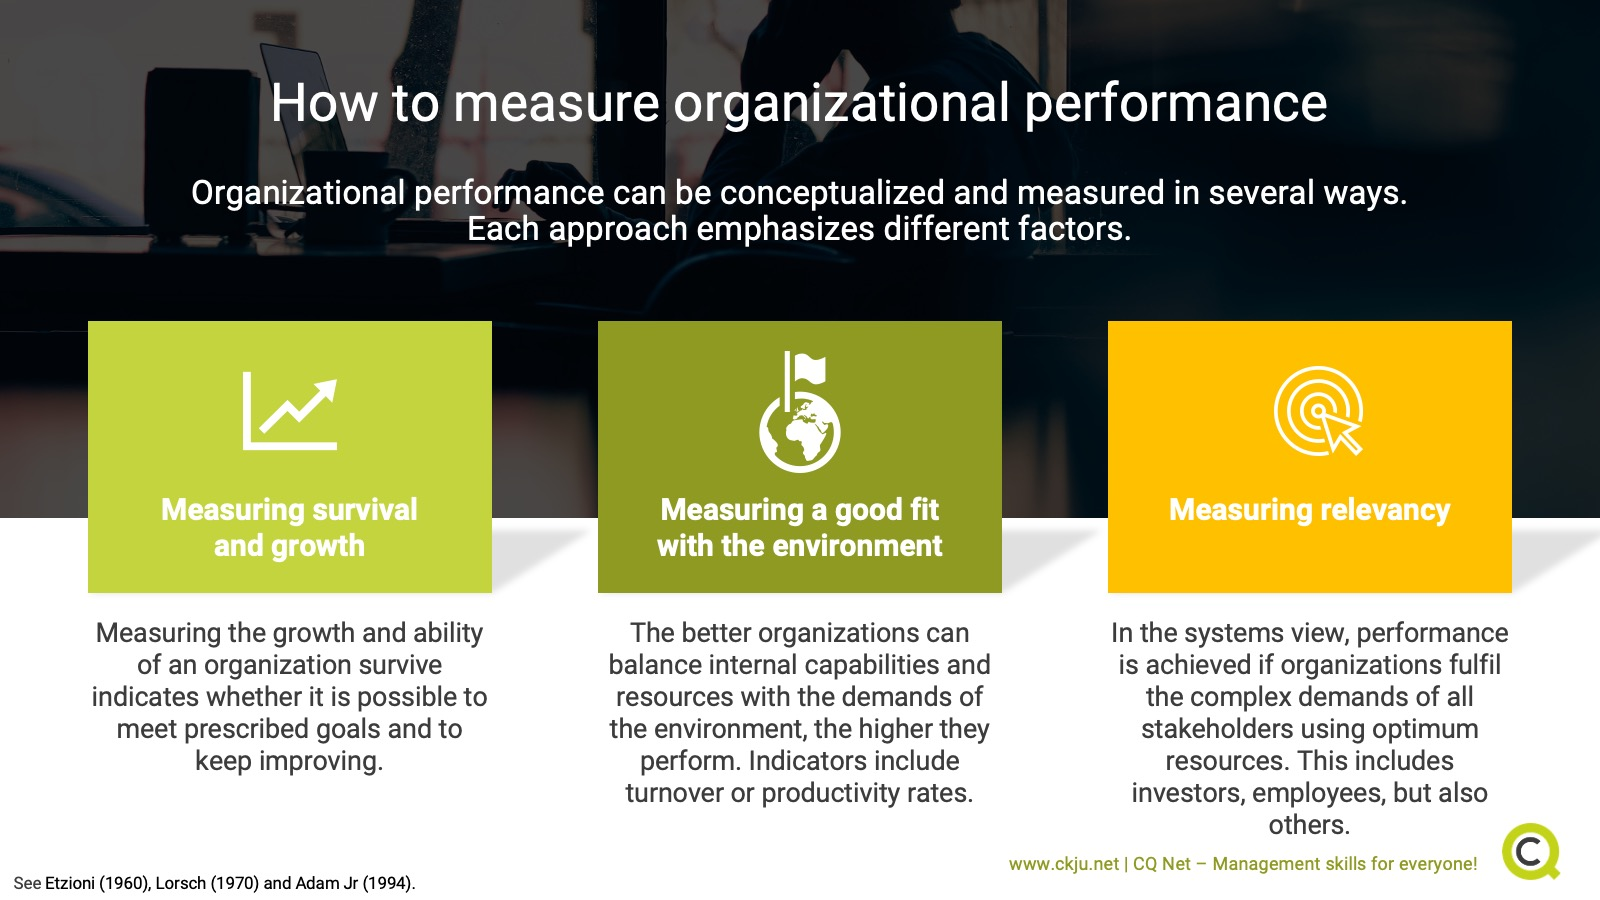 Organizational performance is measured using different approaches